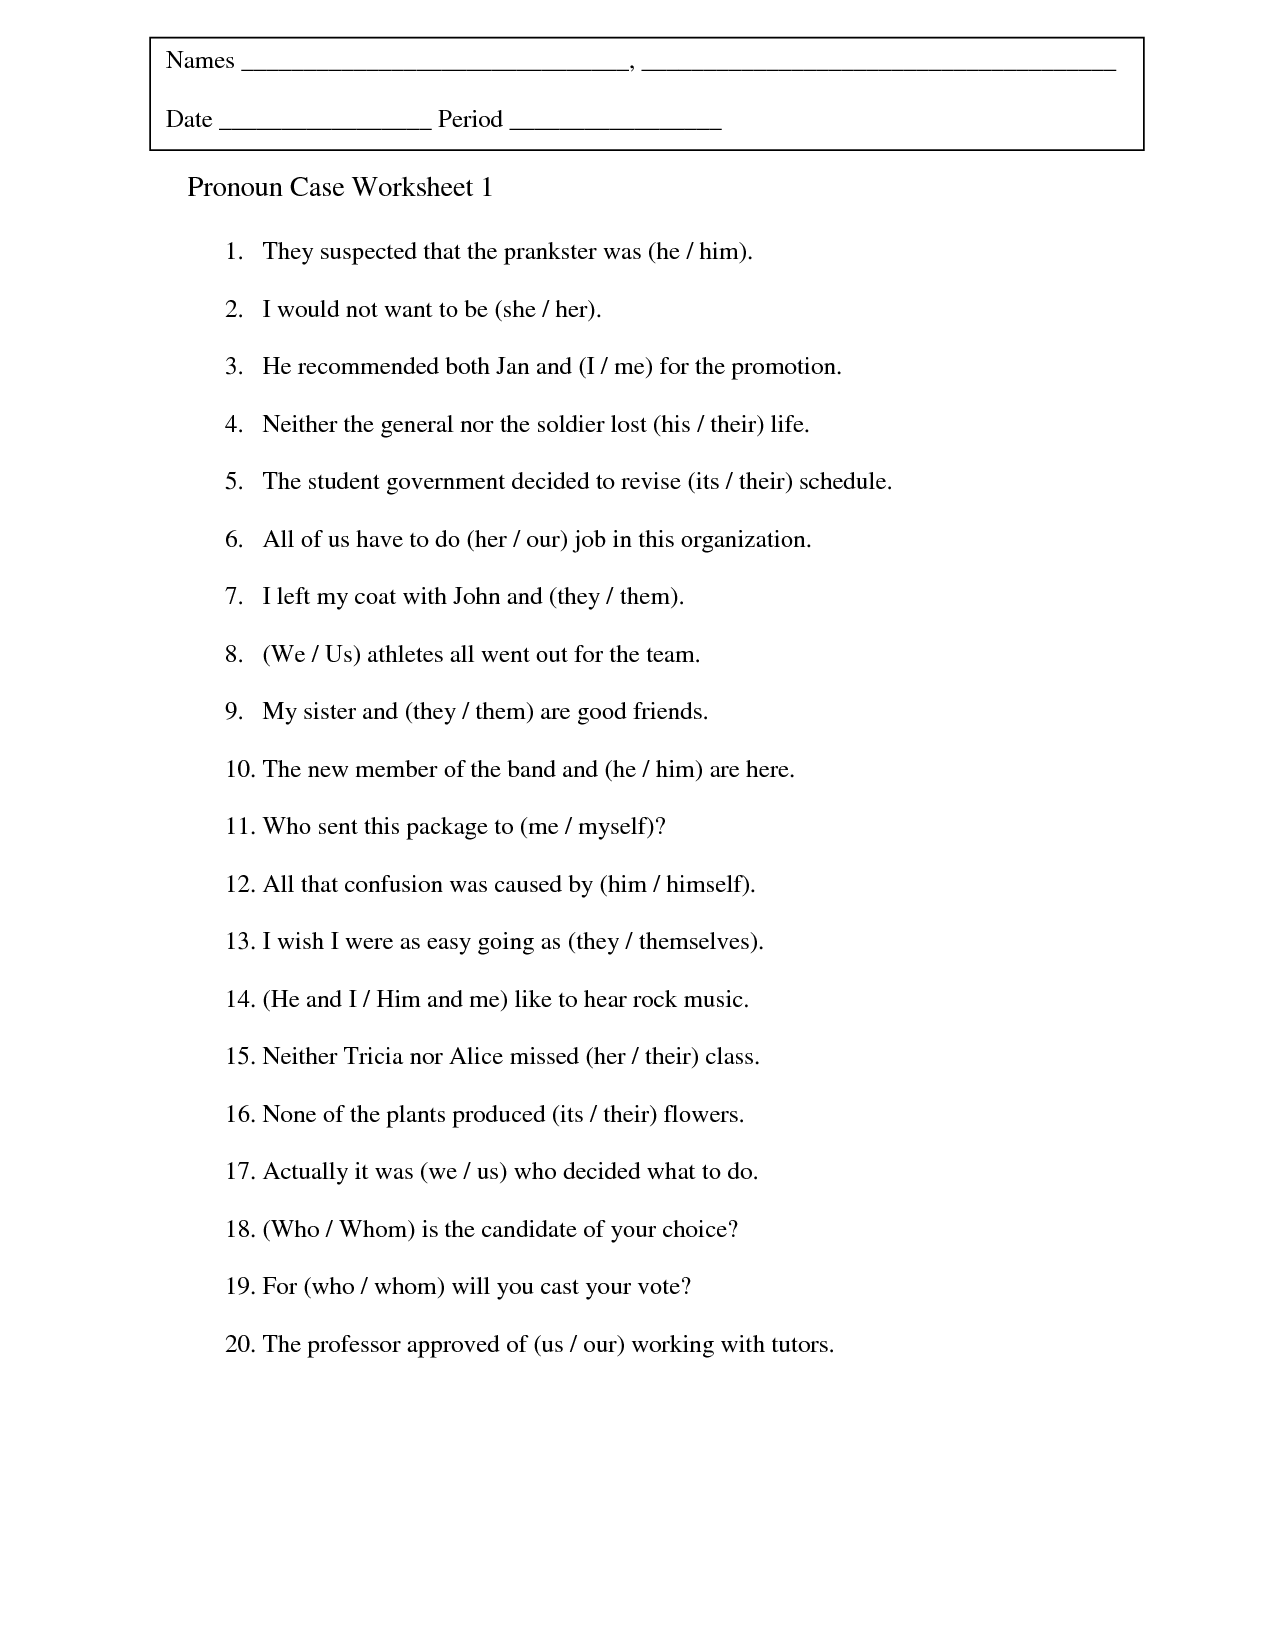 Printables Pronoun Case Worksheet school subject band quotes quotesgram follow us